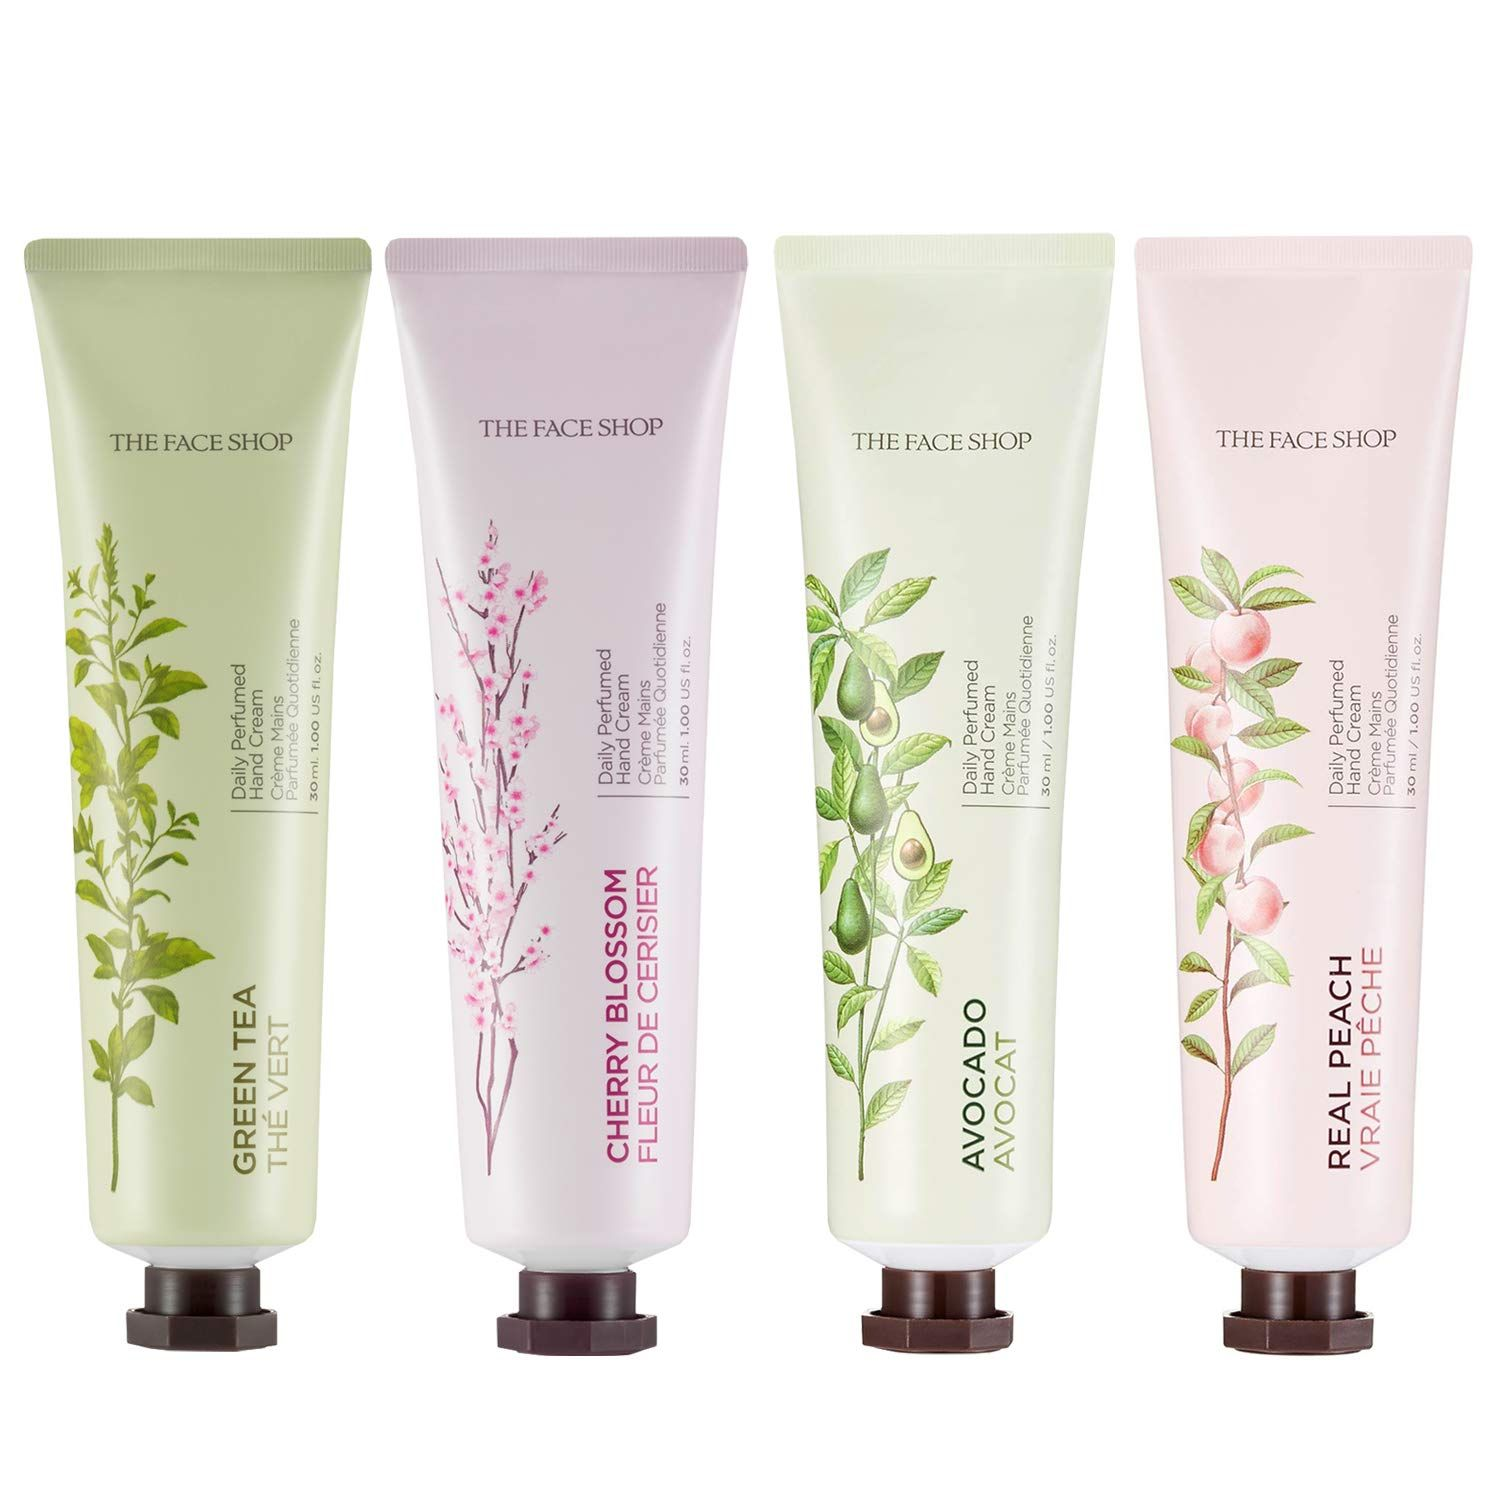 Thefaceshop Daily Perfume Moisturizing Hand Cream Peach